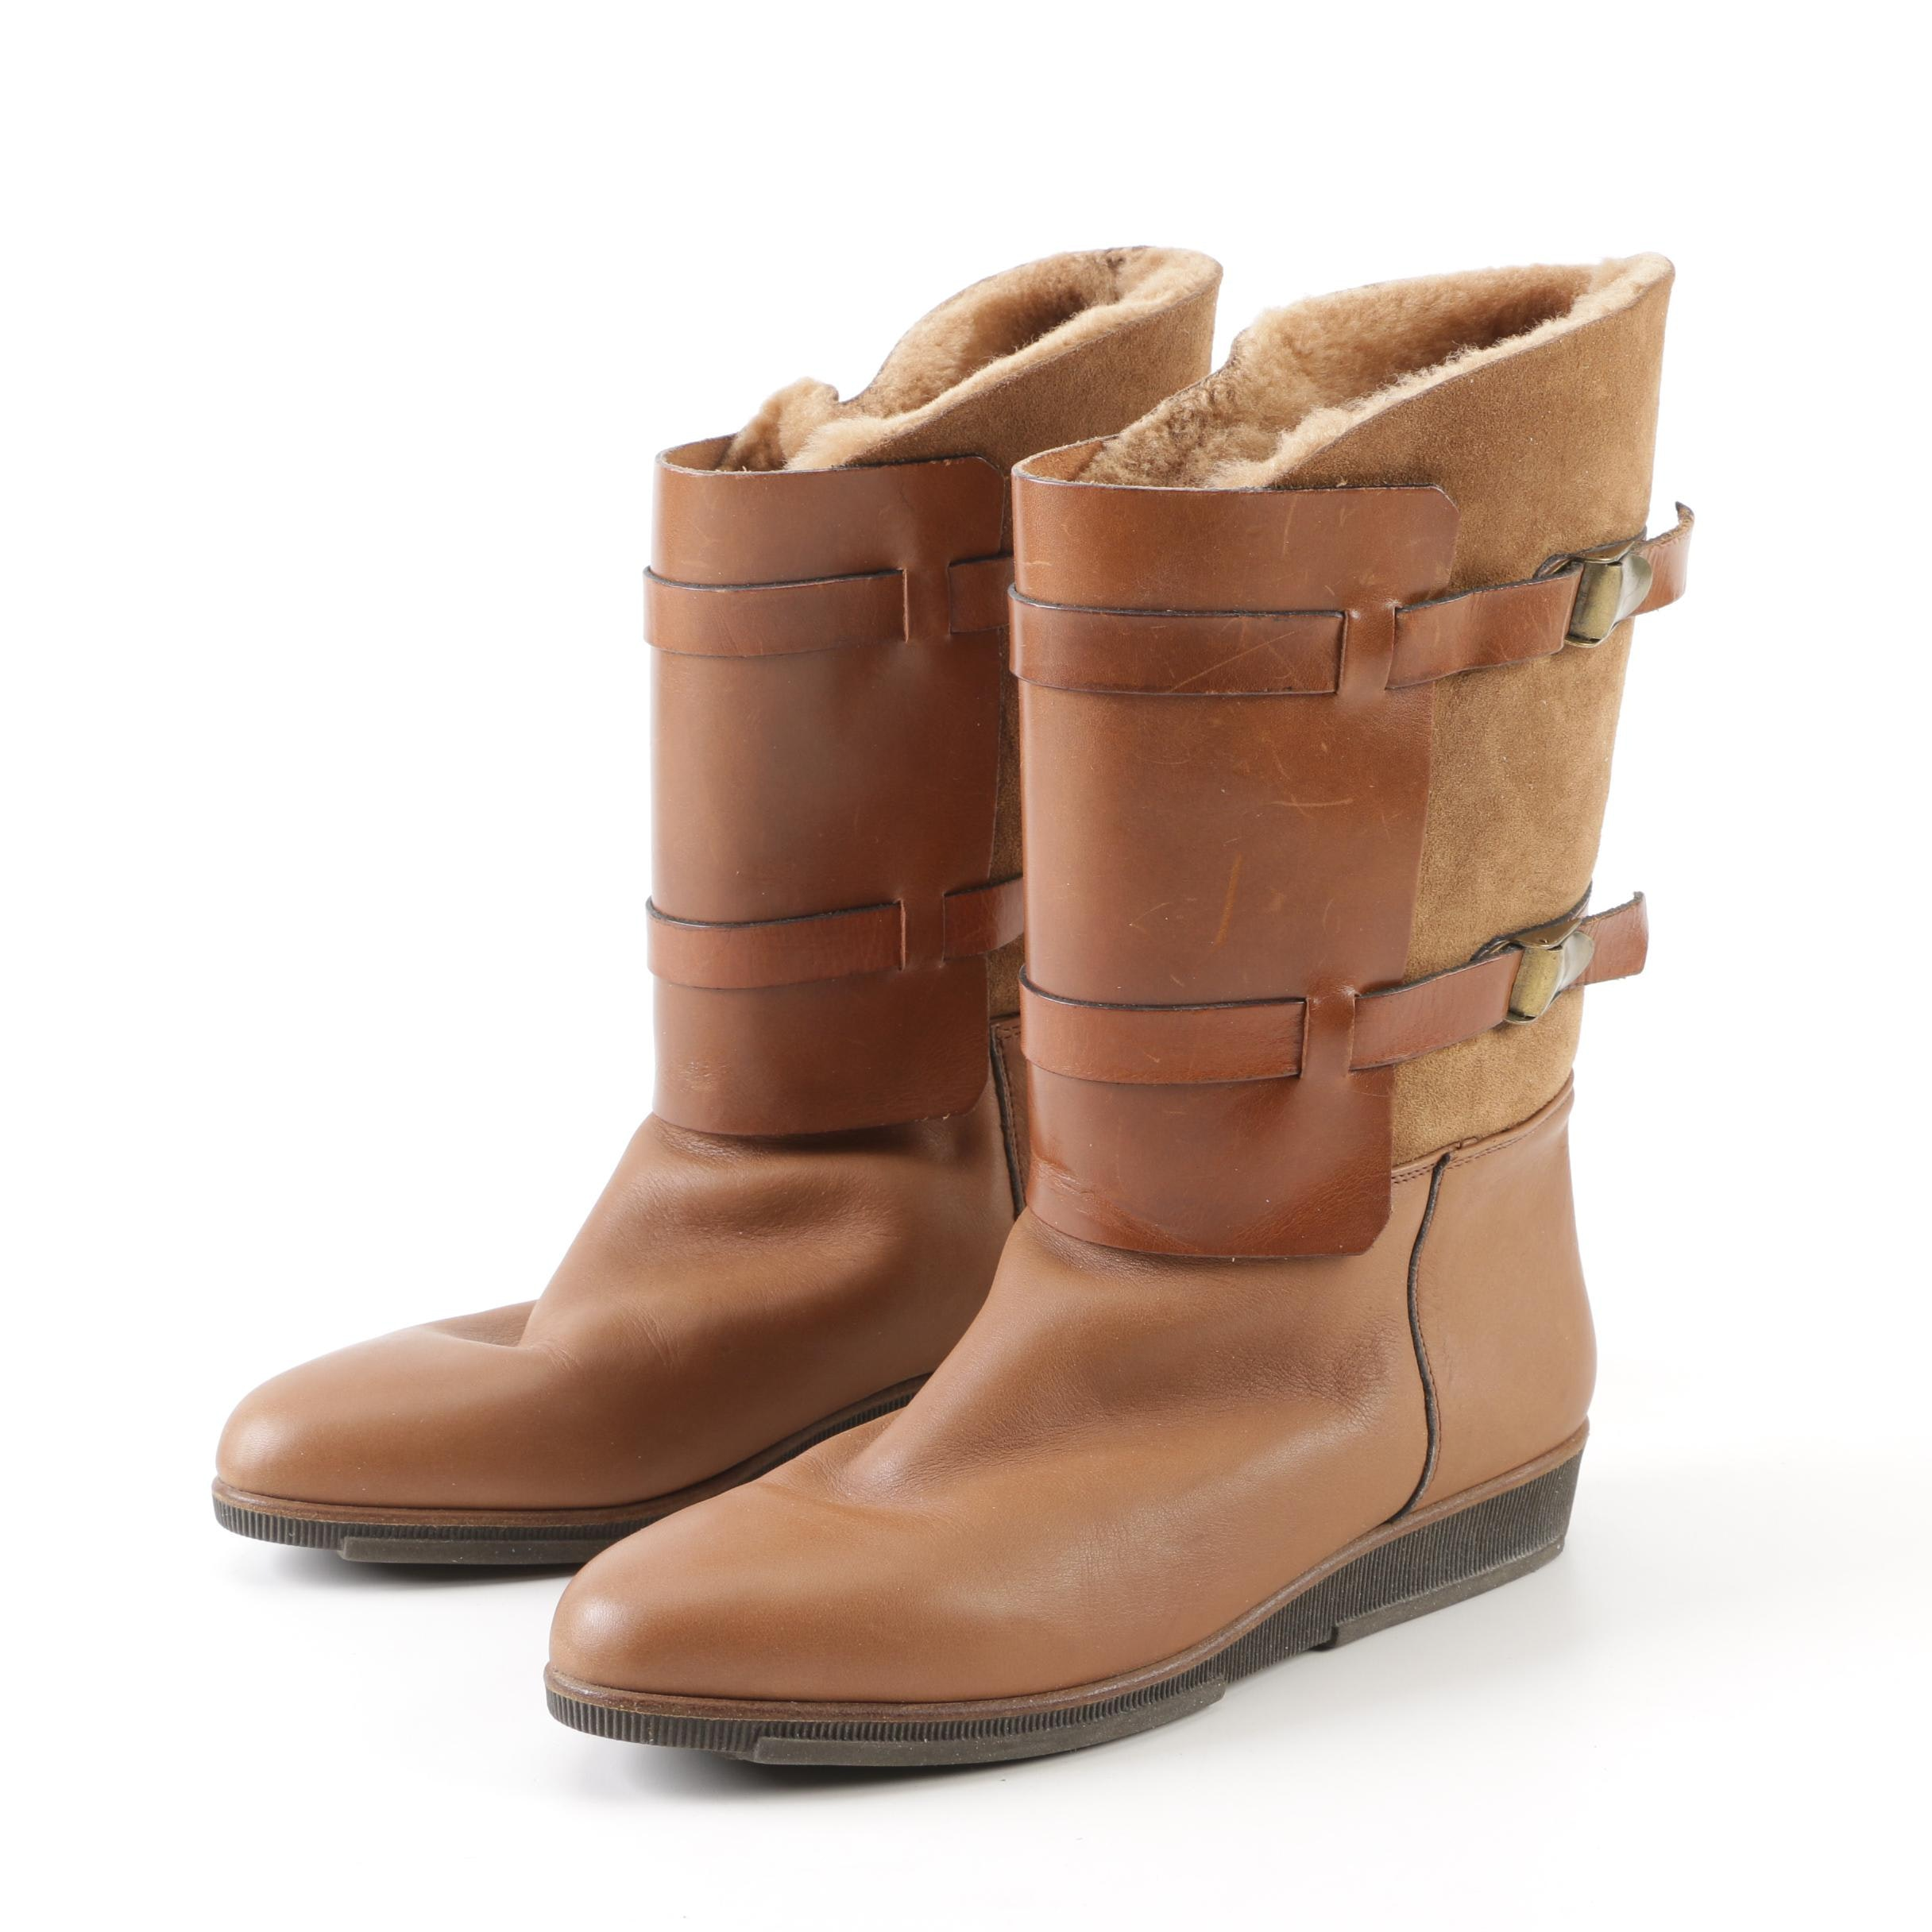 Women's Tan Suede and Leather Boots with Shearling Linings, Made in Italy